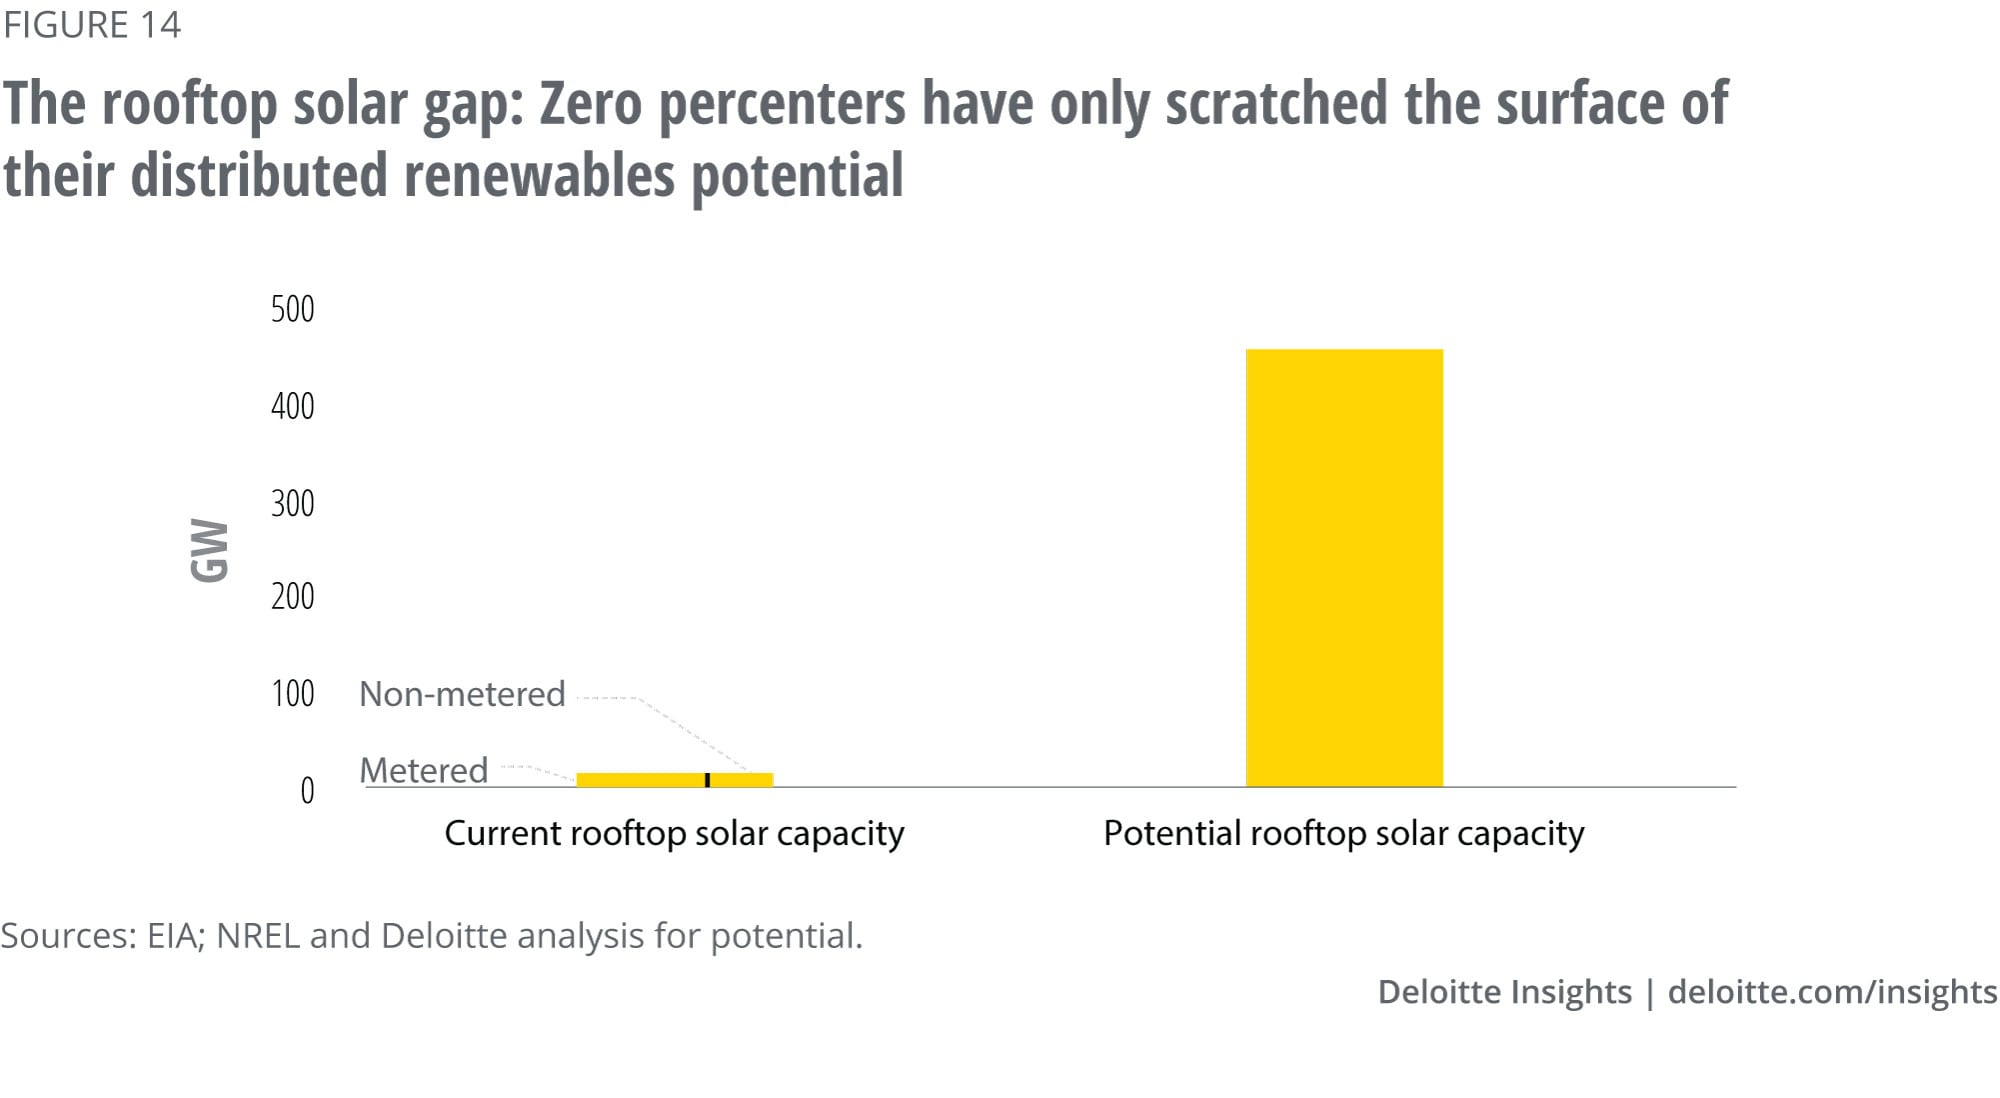 Distributed solar capacity and potential